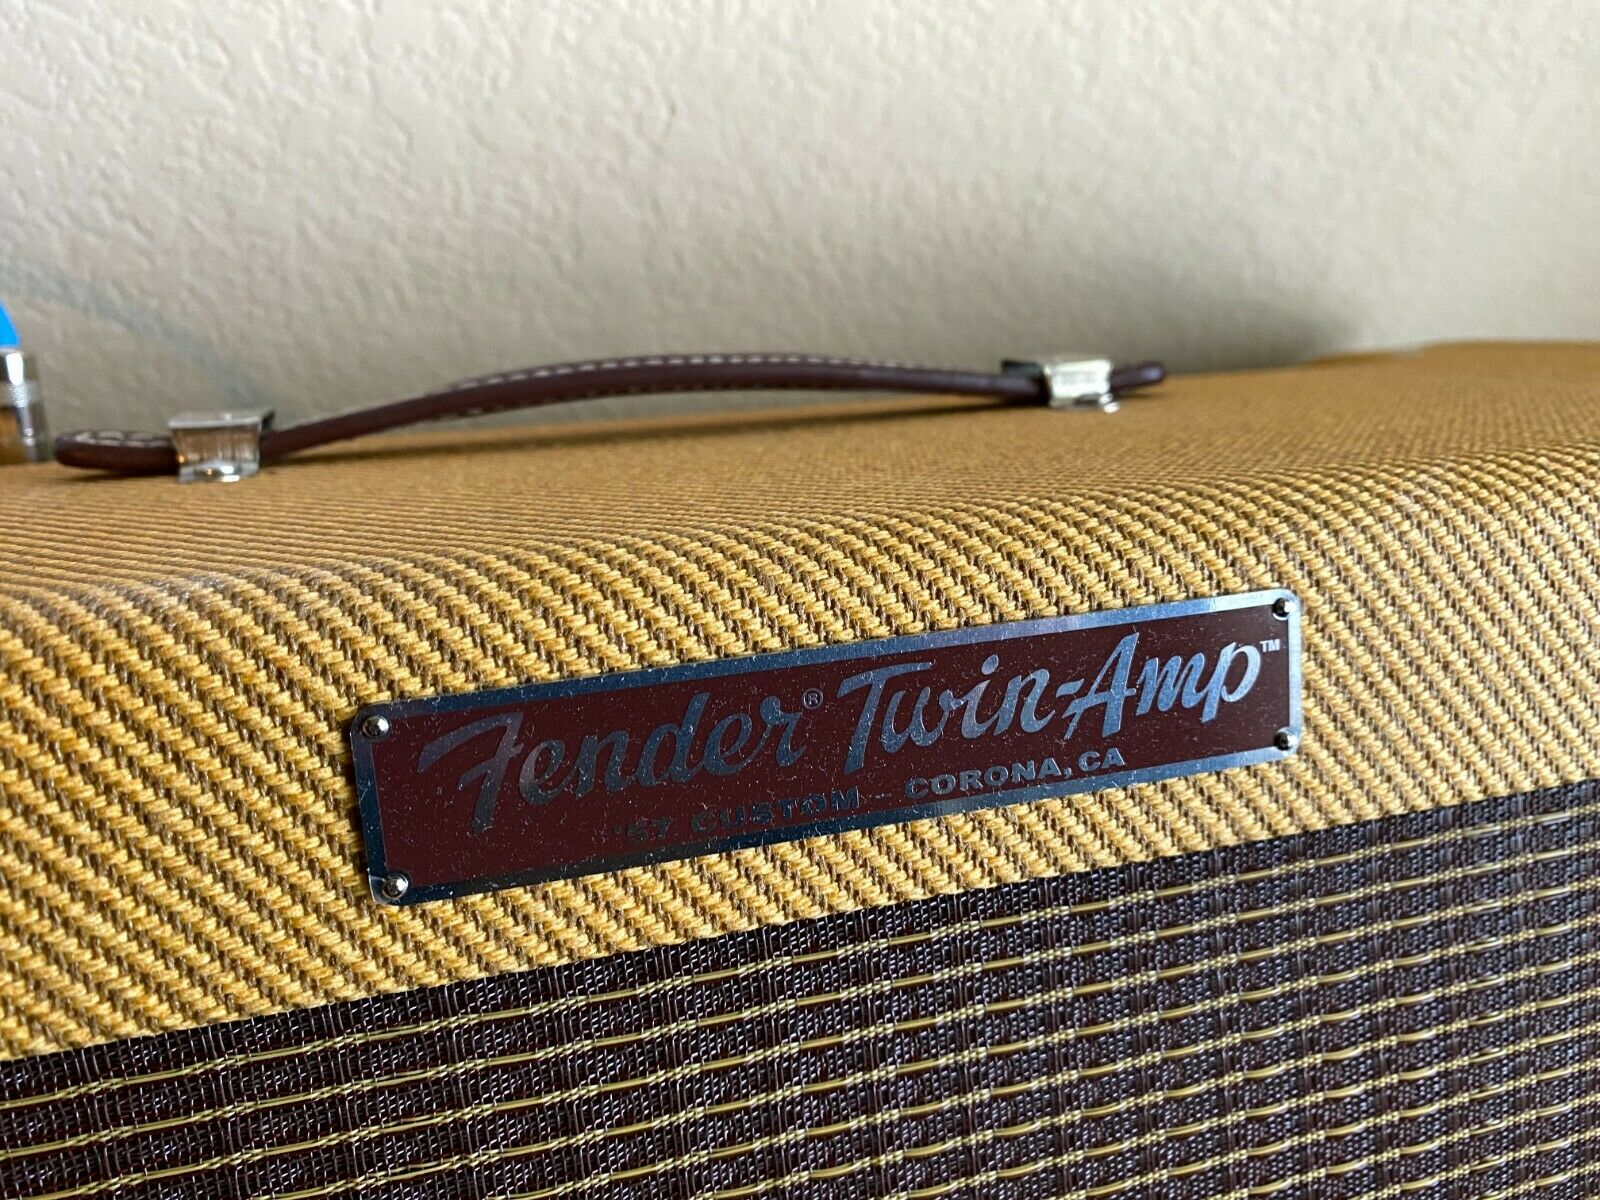 Fender '57 Custom Twin 40W 2x12 Tube Guitar Amp Lacquered Tweed (MINT). Available Now for 2650.00